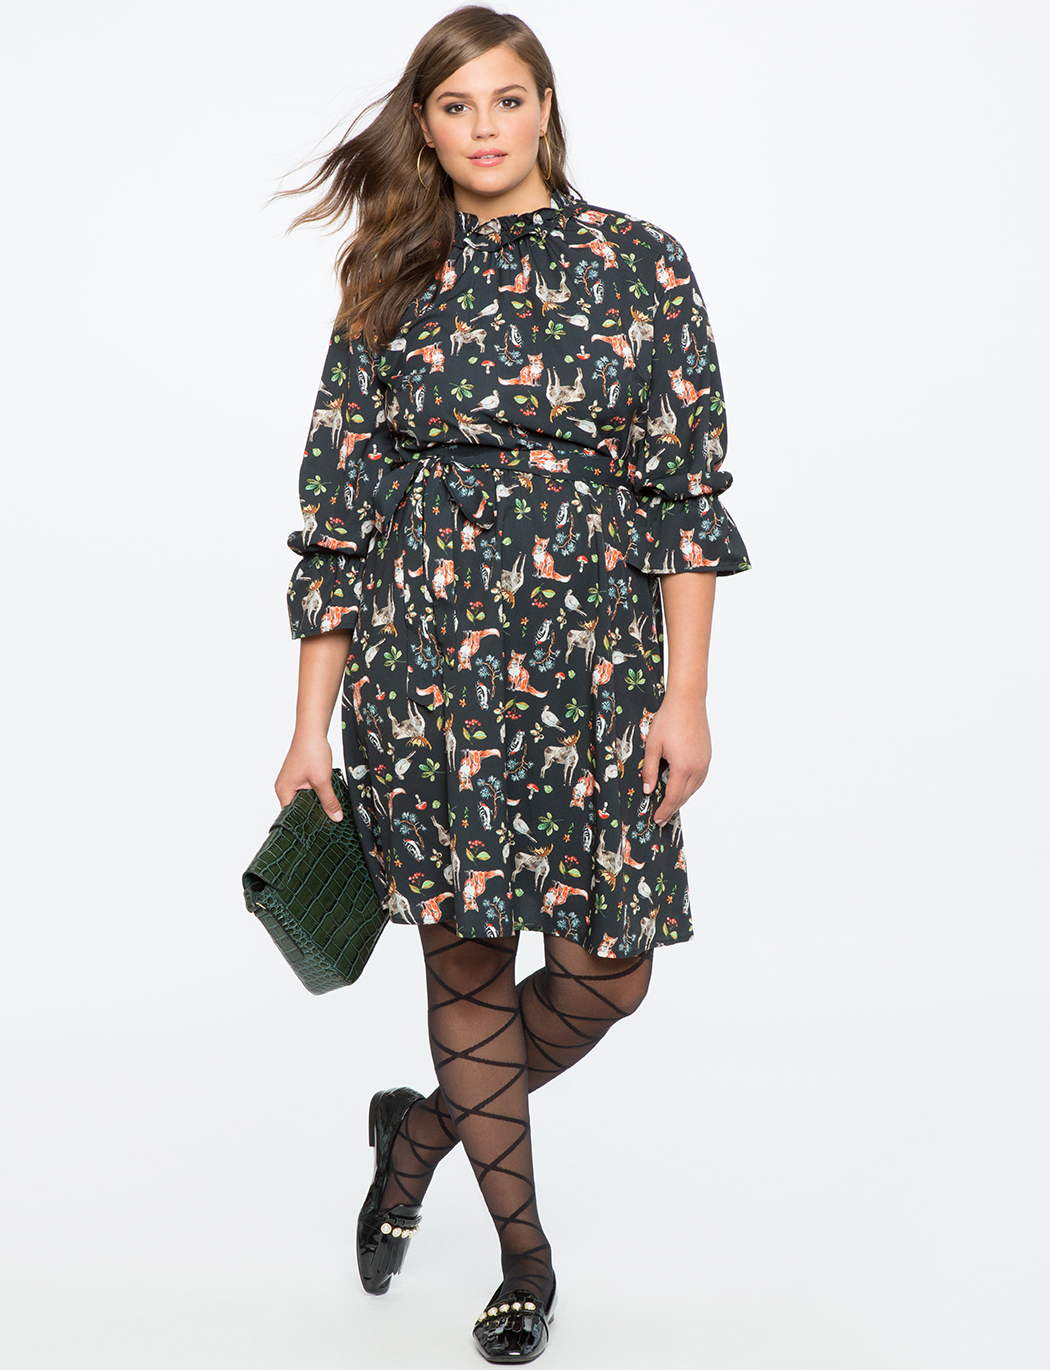 Ruffle Detail Printed Dress with Tie Waist